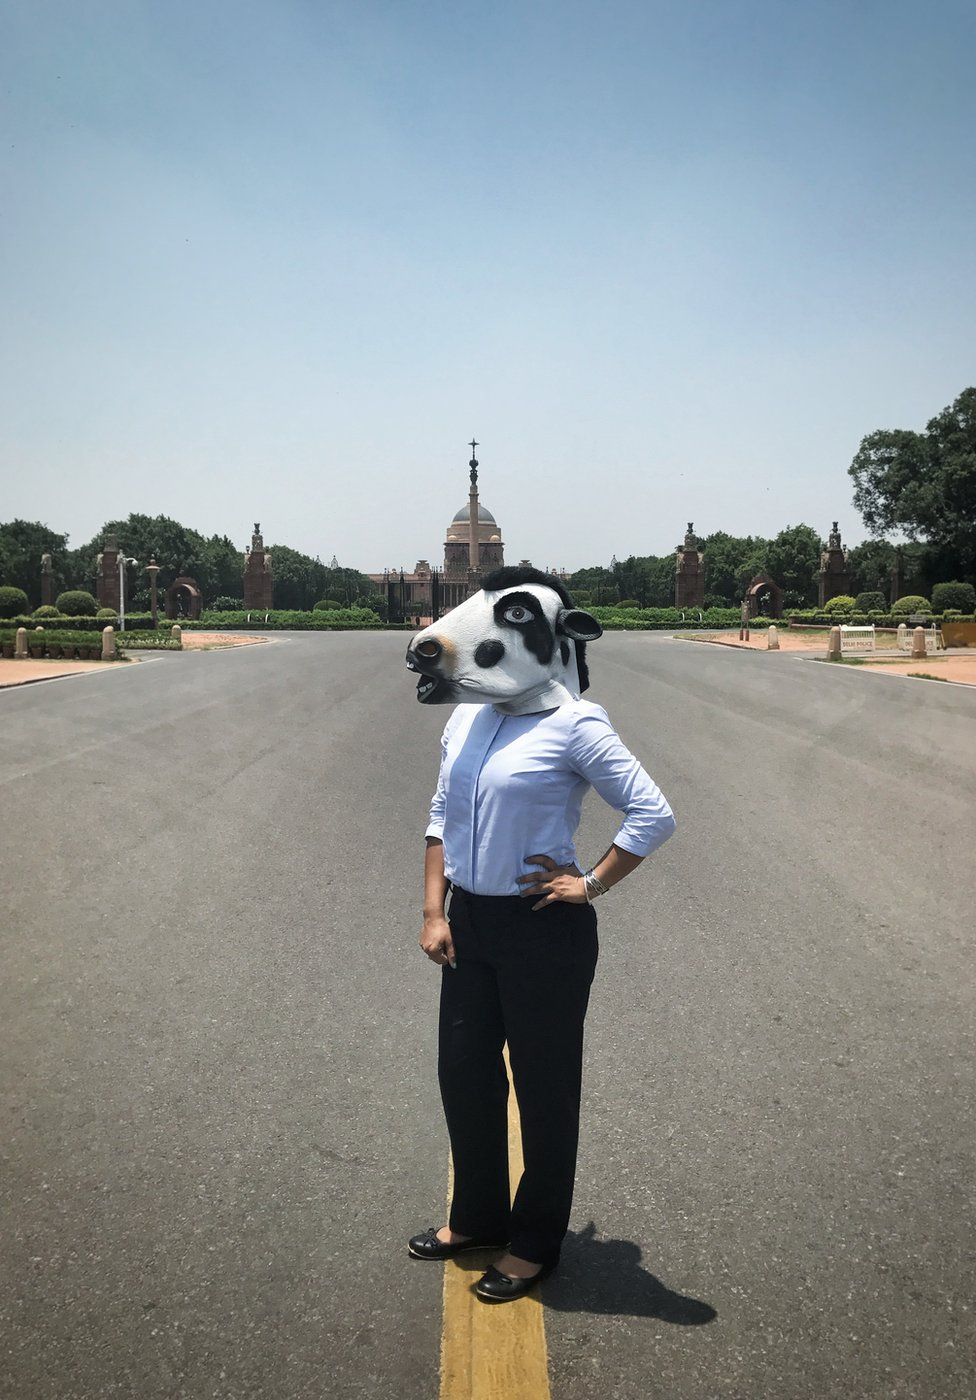 A woman with a cow mask in front of the presidential palace